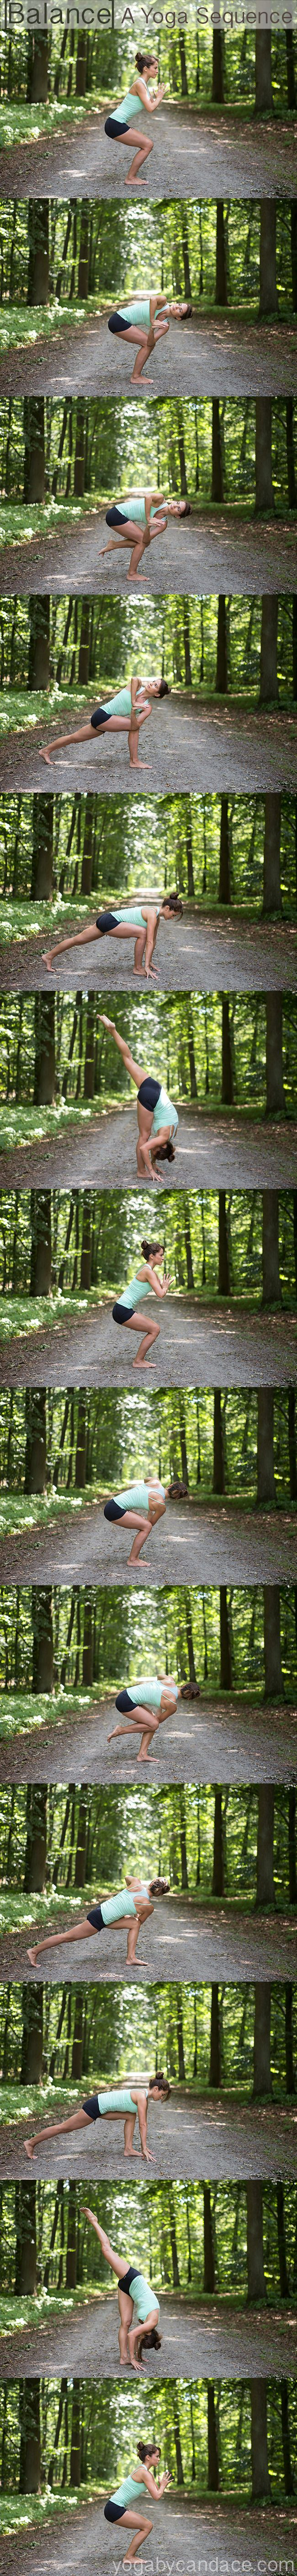 A challenging yoga sequence you can do right from your home.